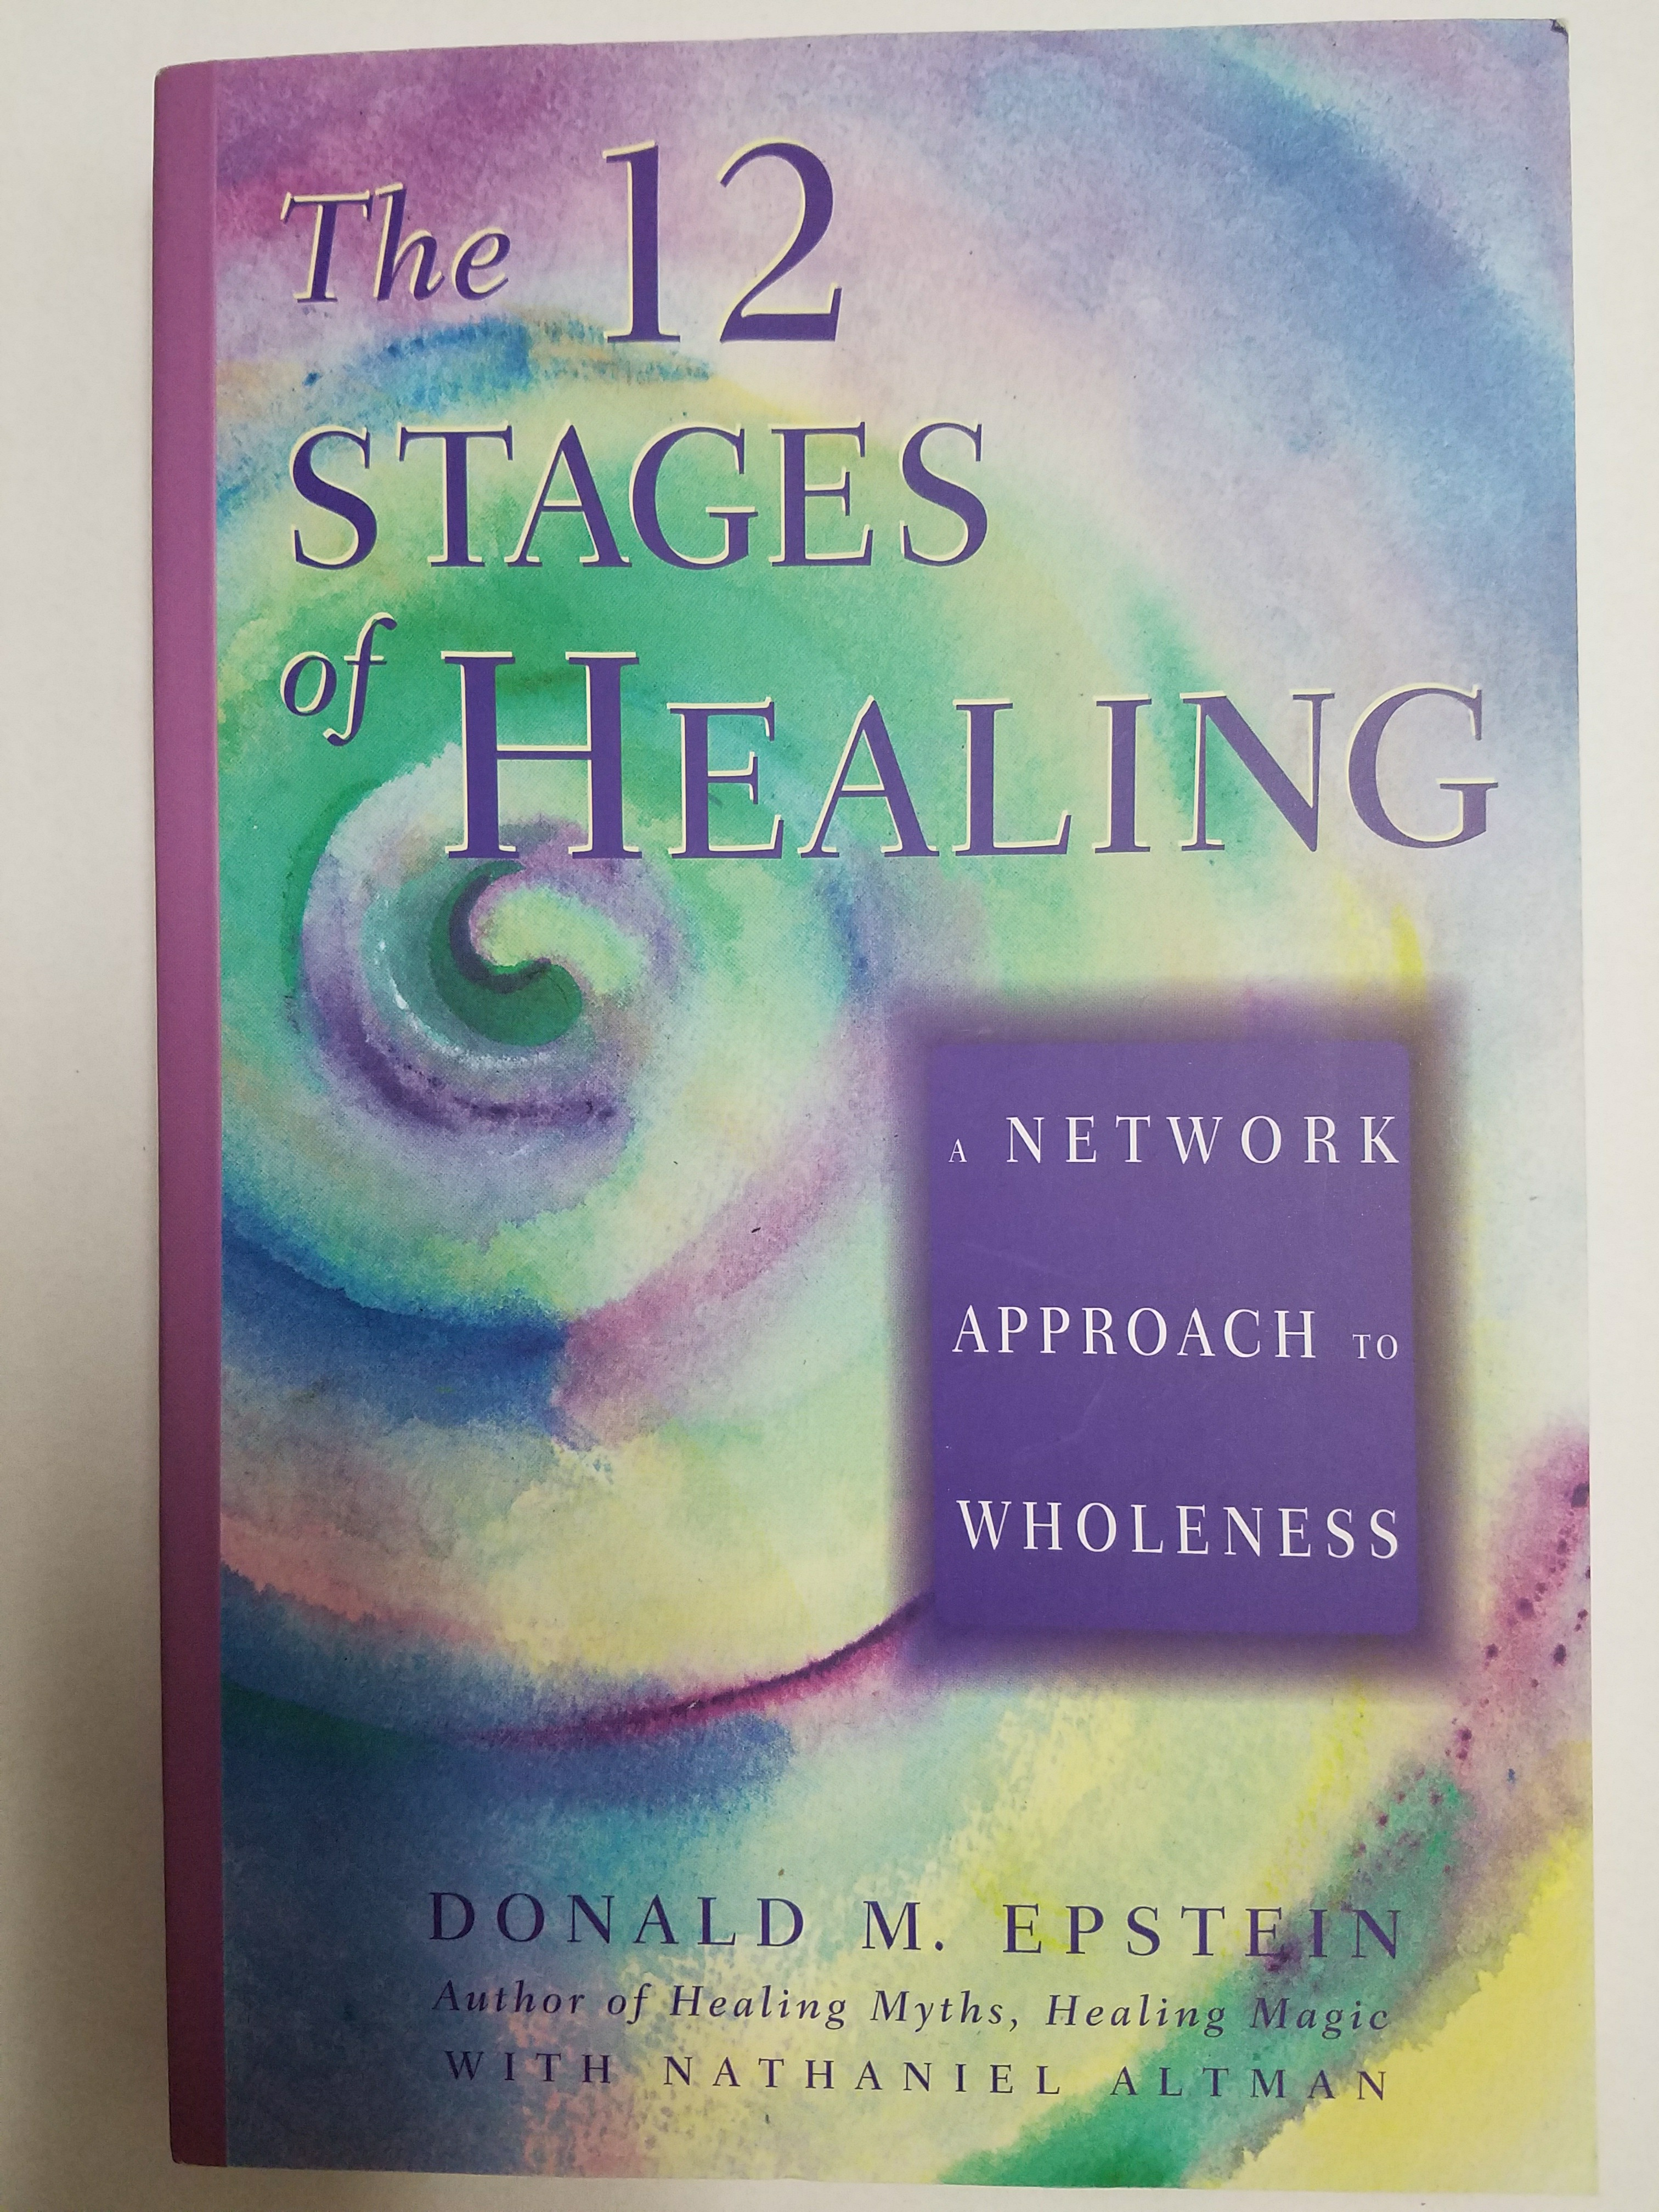 """Front cover of book """"The 12 Stages of Healing - a Network Approach to Wholeness"""" by Donald M. Epstein"""